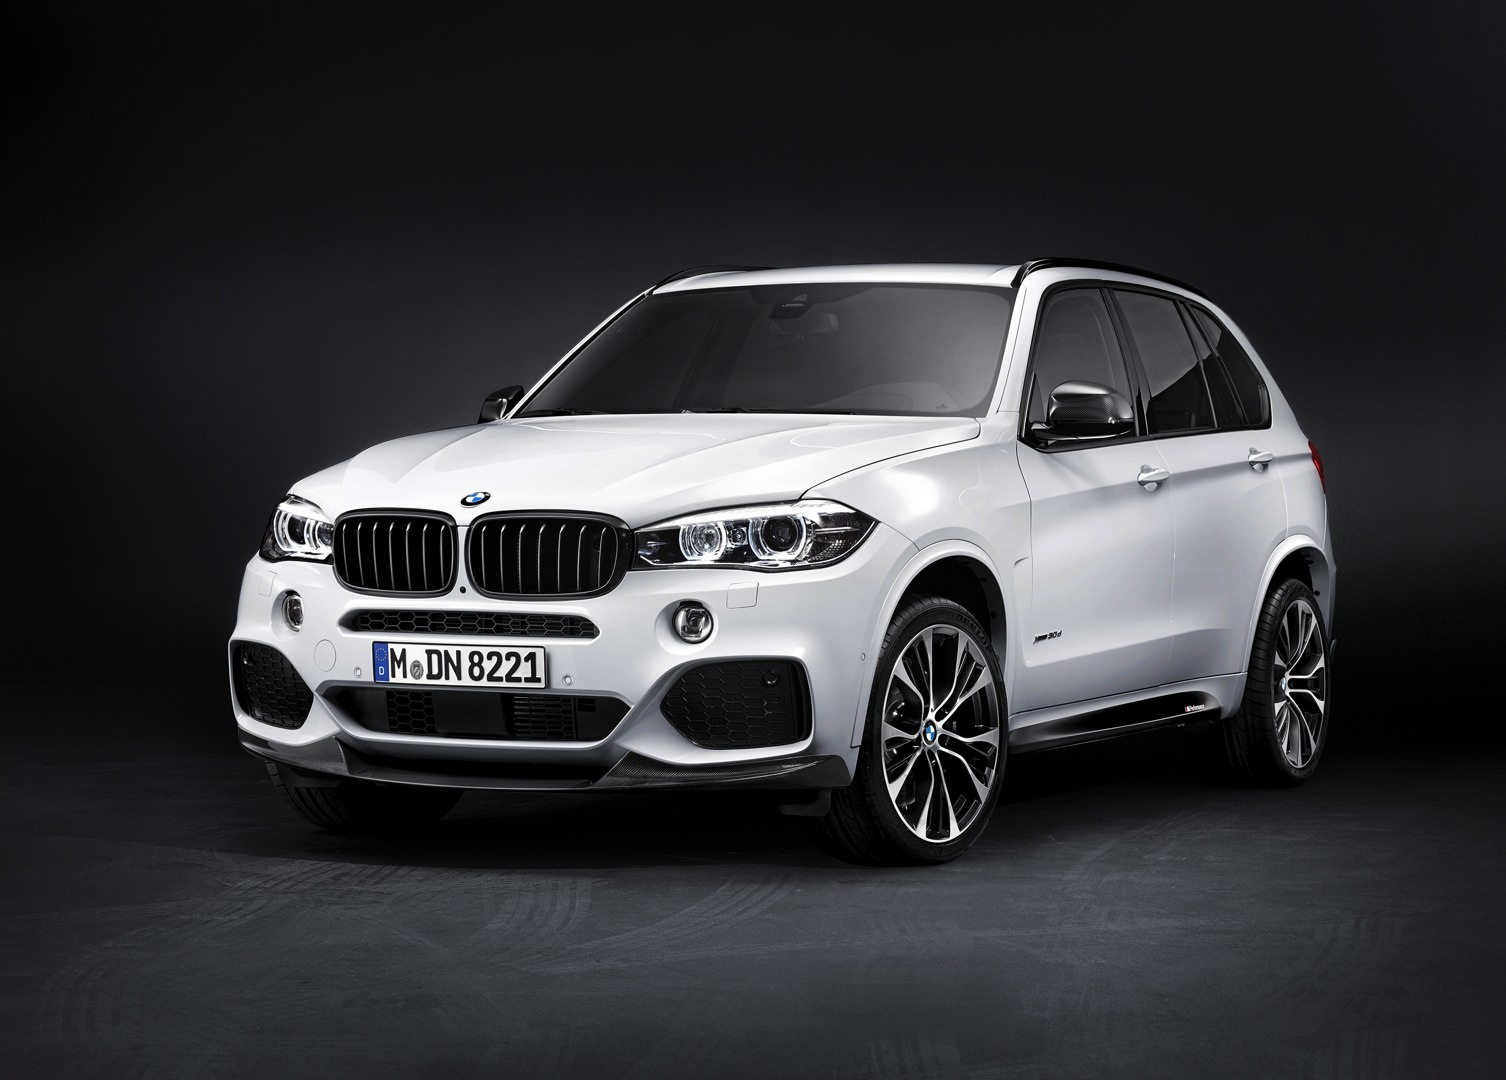 2014 bmw x5 m performance parts arrive autoevolution. Black Bedroom Furniture Sets. Home Design Ideas